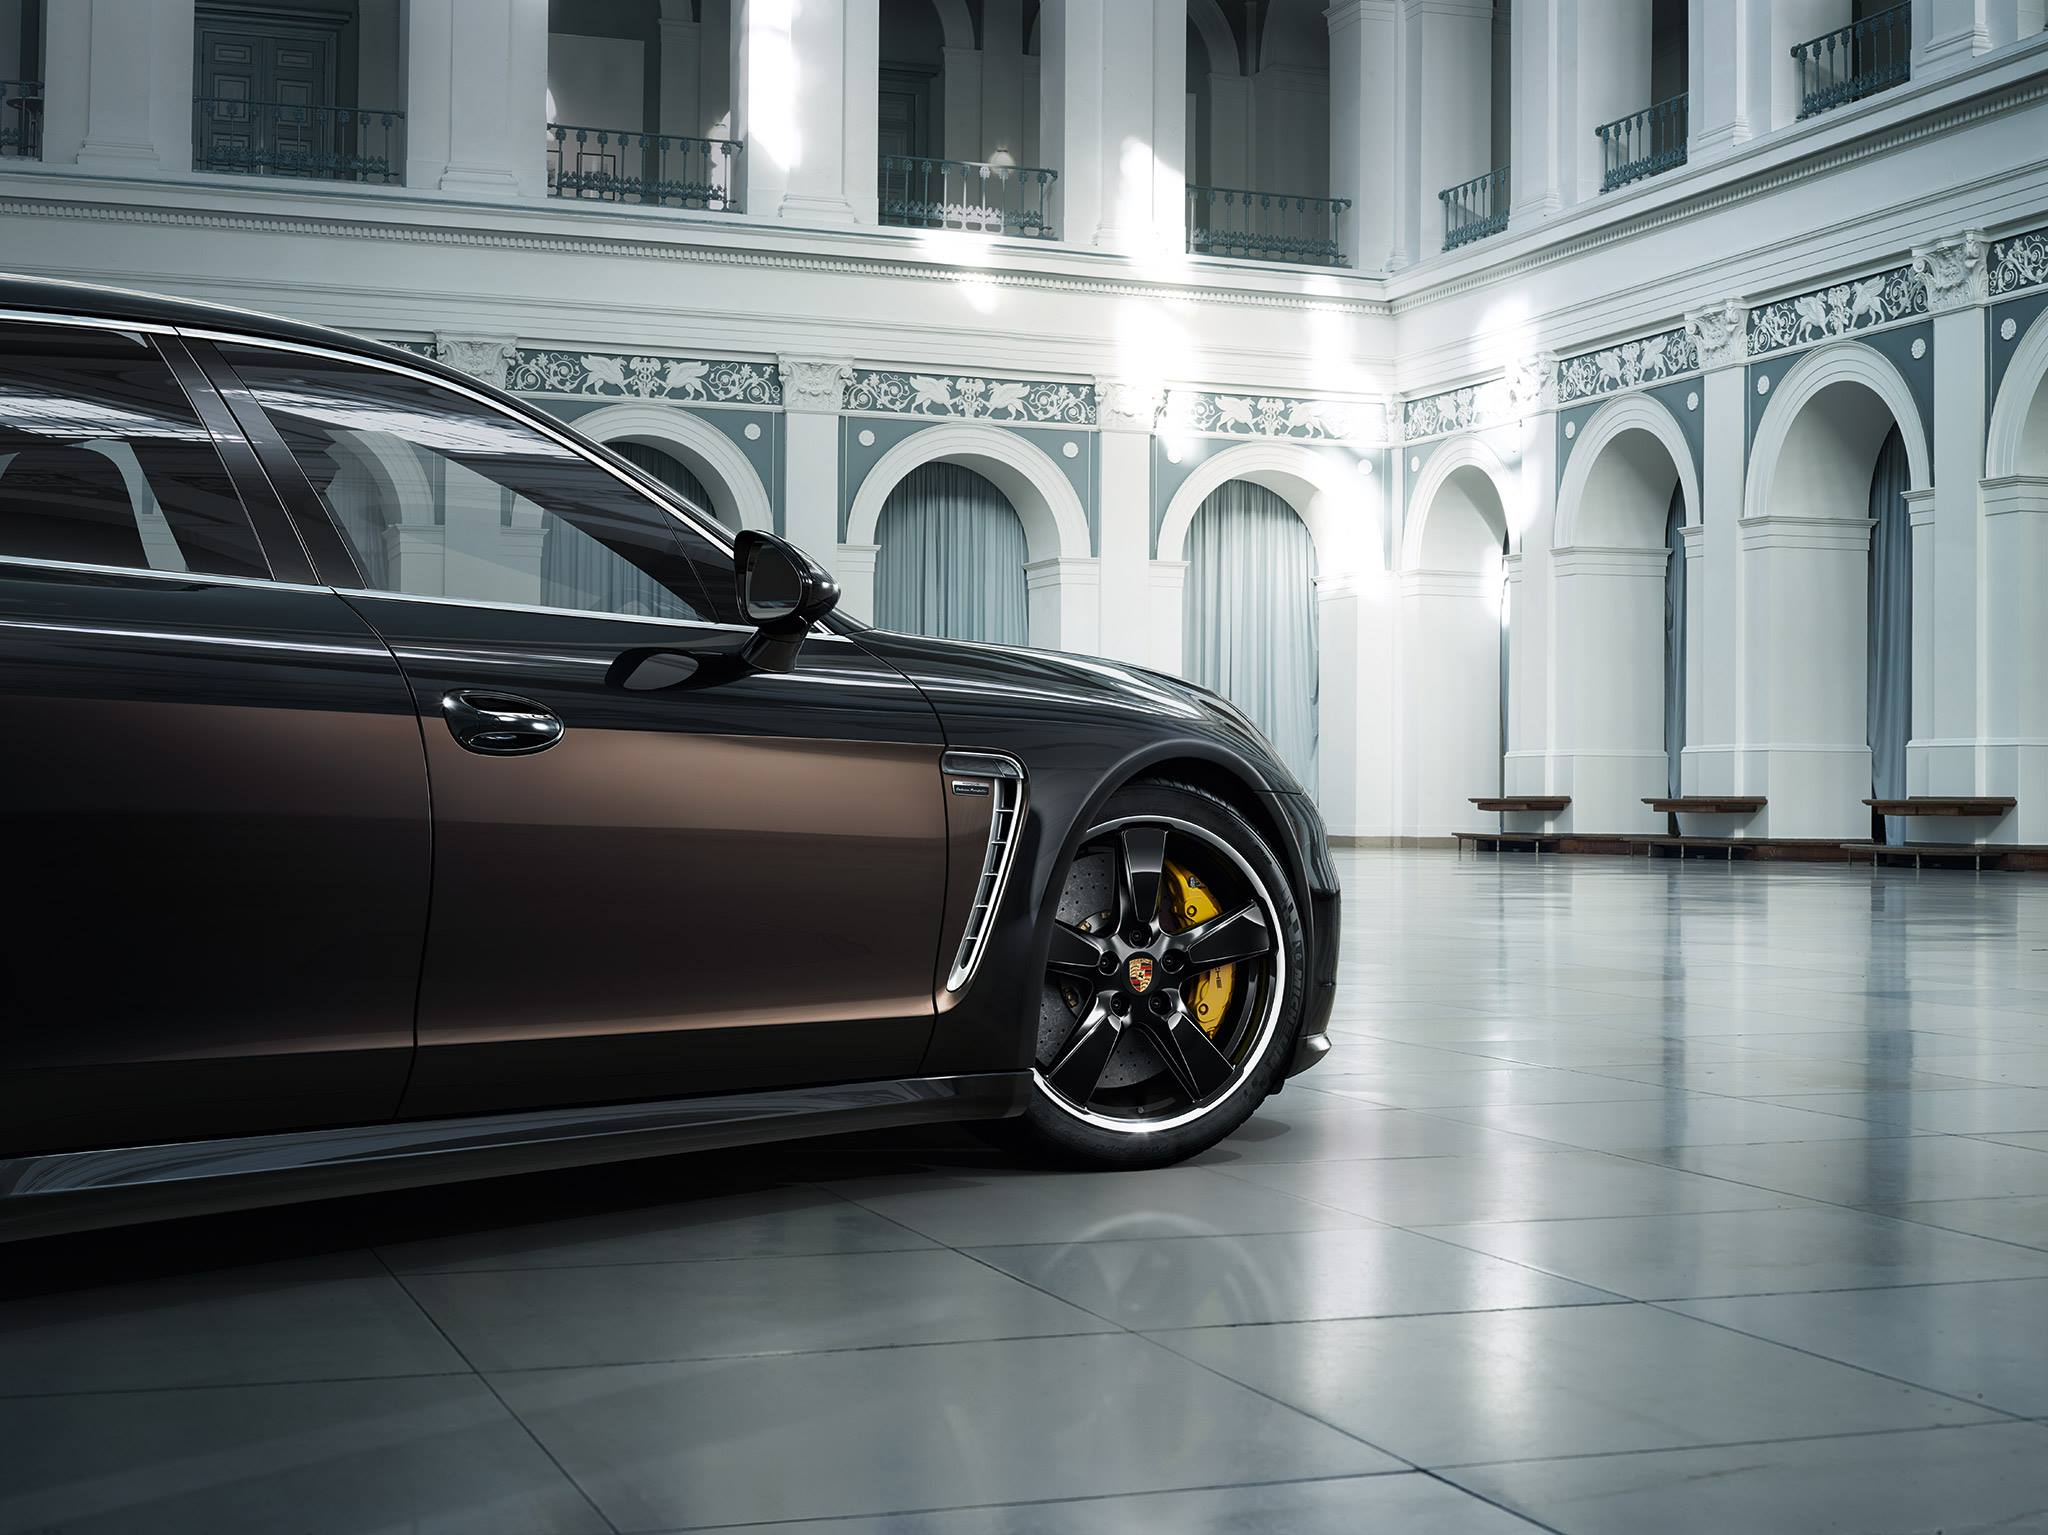 Panamera Exclusive is one the first instagram photos